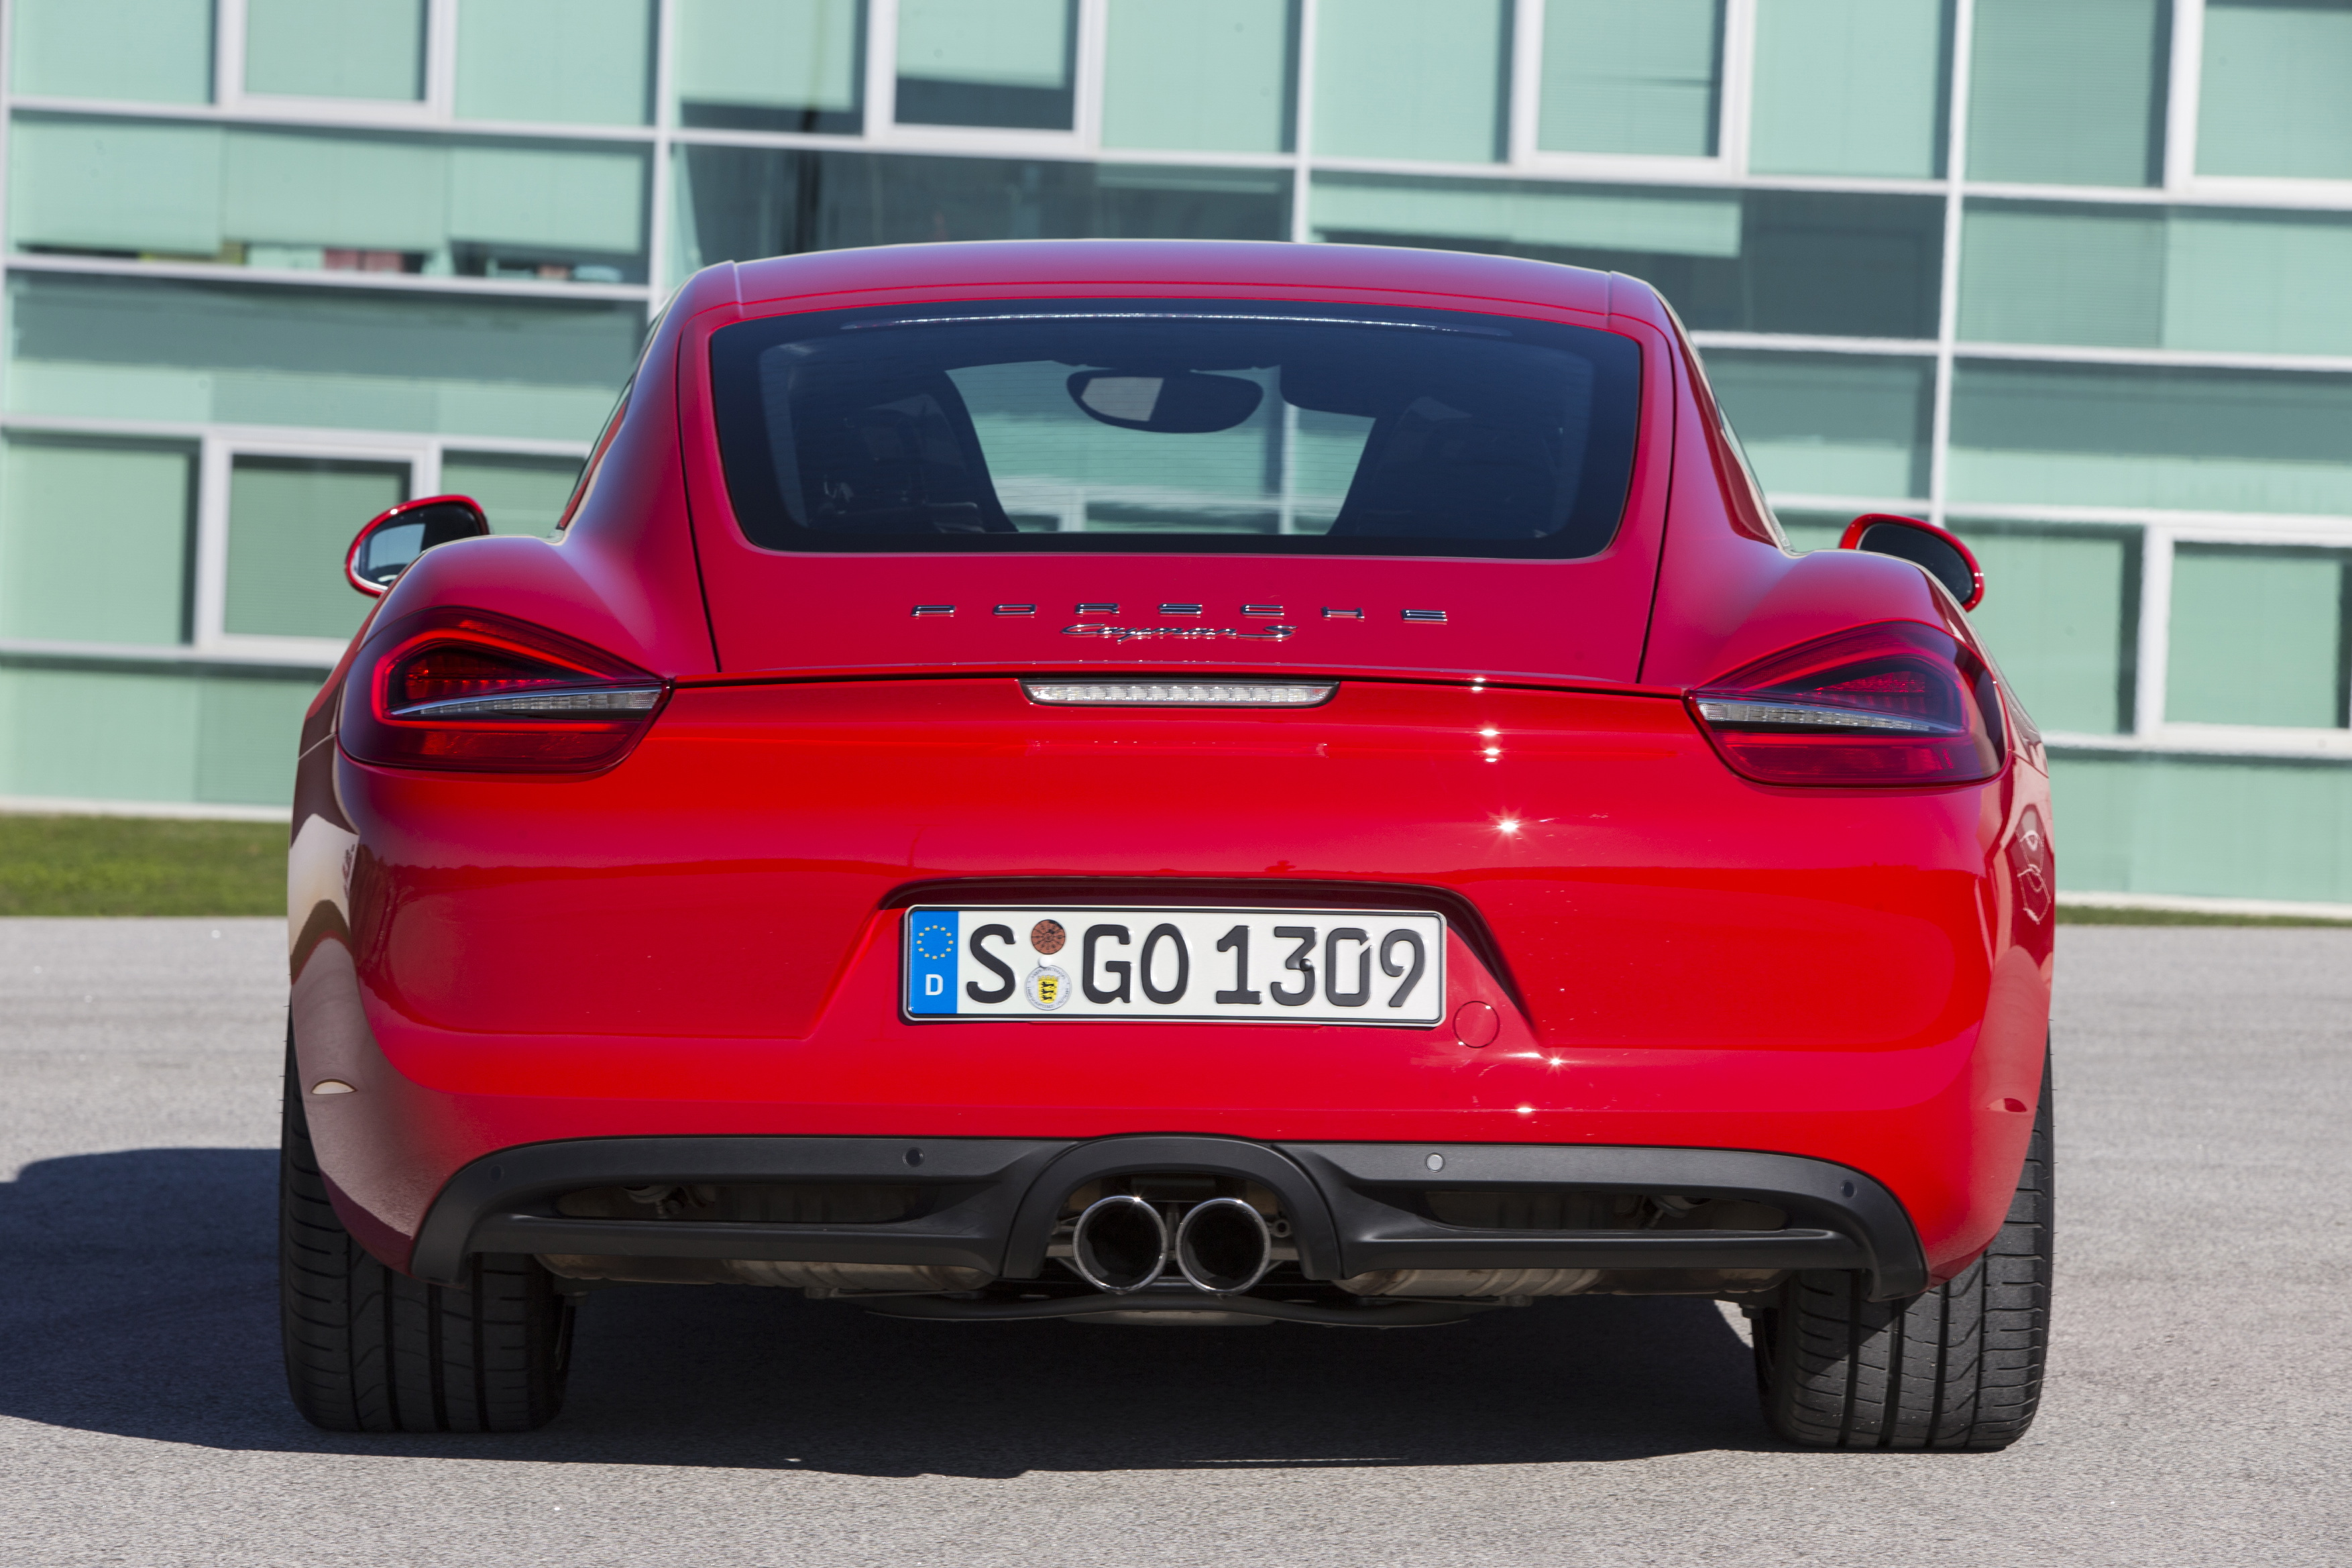 2014 Porsche Cayman Rear Photo (View 3 of 8)